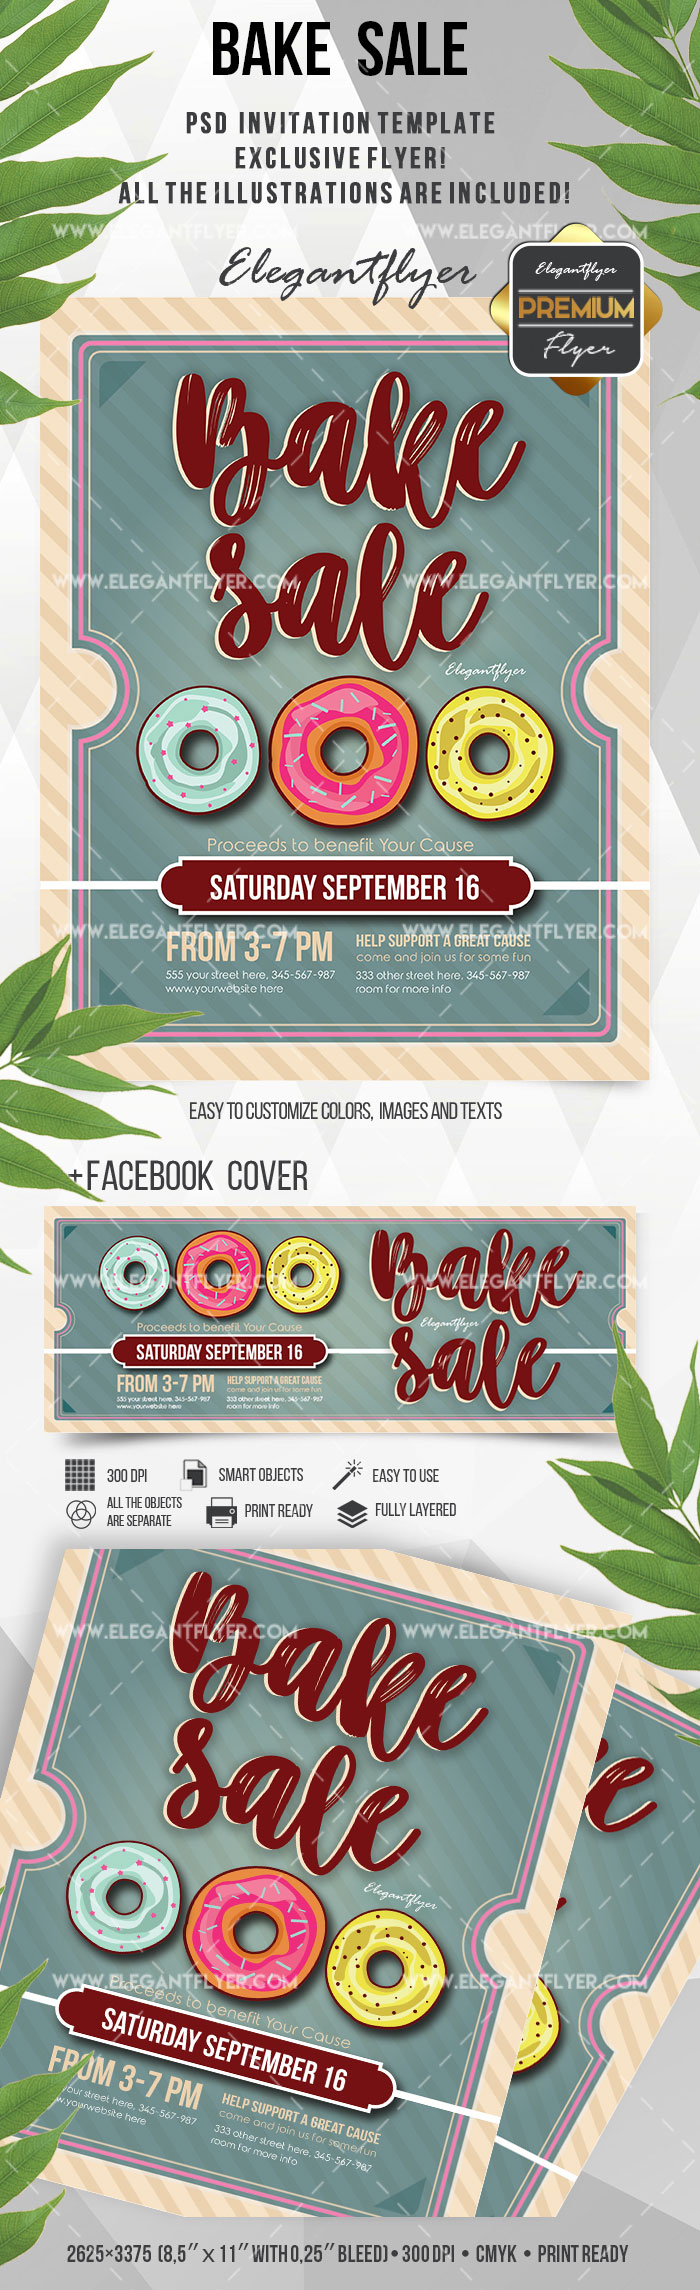 Flyer Template for Bake and Sale